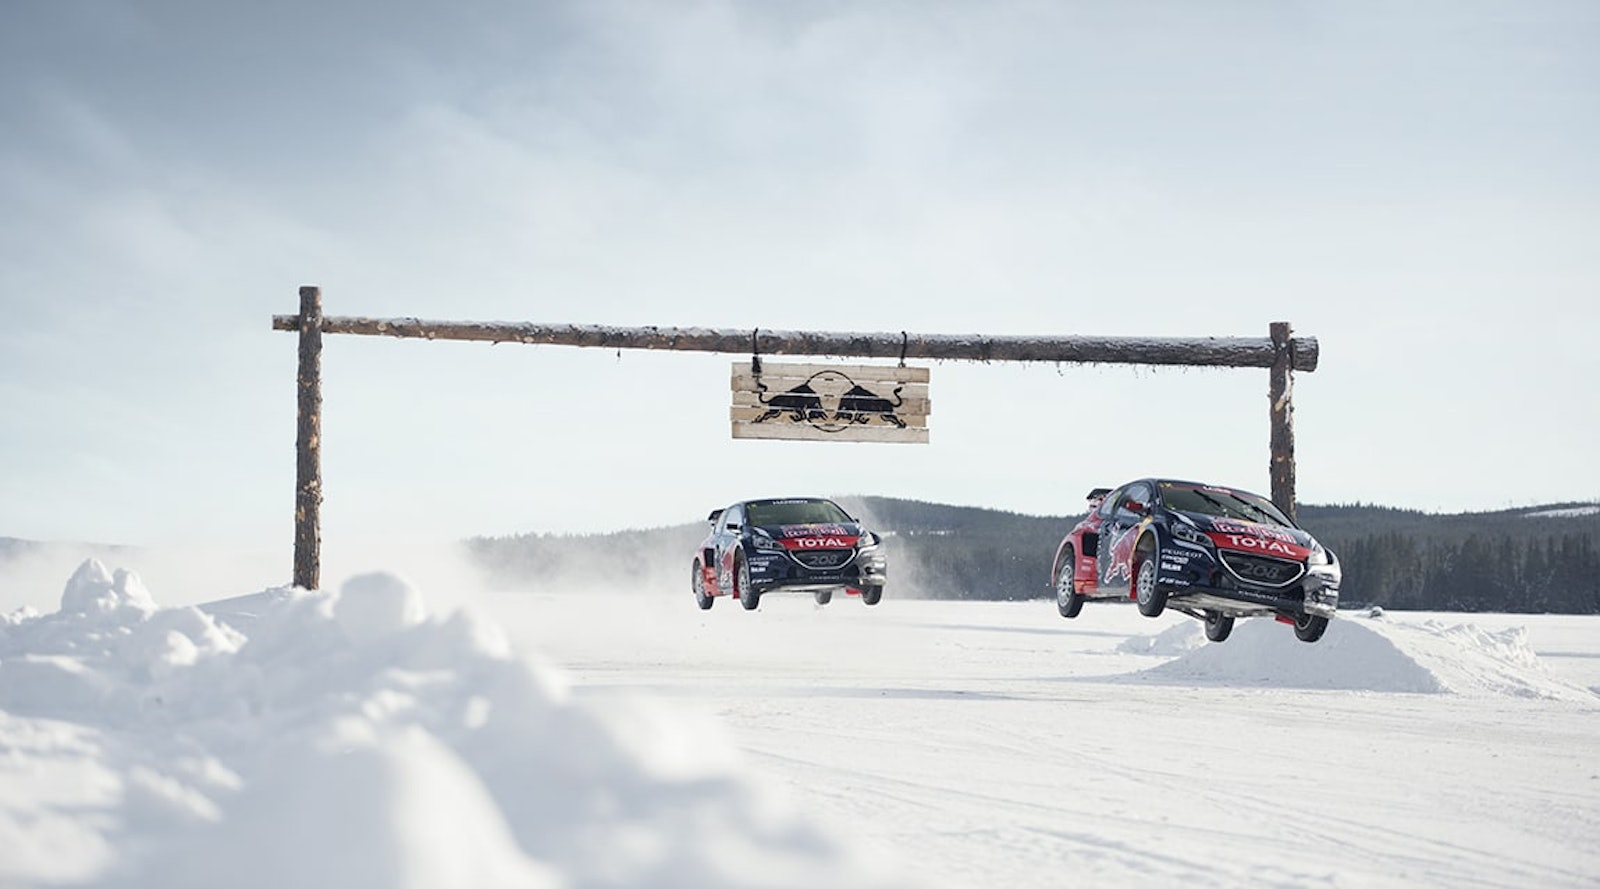 Sebastien Loeb and Timmy Hansen perform during the Rallycross on Ice project in Are, Sweden on February 16, 2016 // Oskar Bakke/Red Bull Content Pool // P-20160226-00309 // Usage for editorial use only // Please go to www.redbullcontentpool.com for further information. //